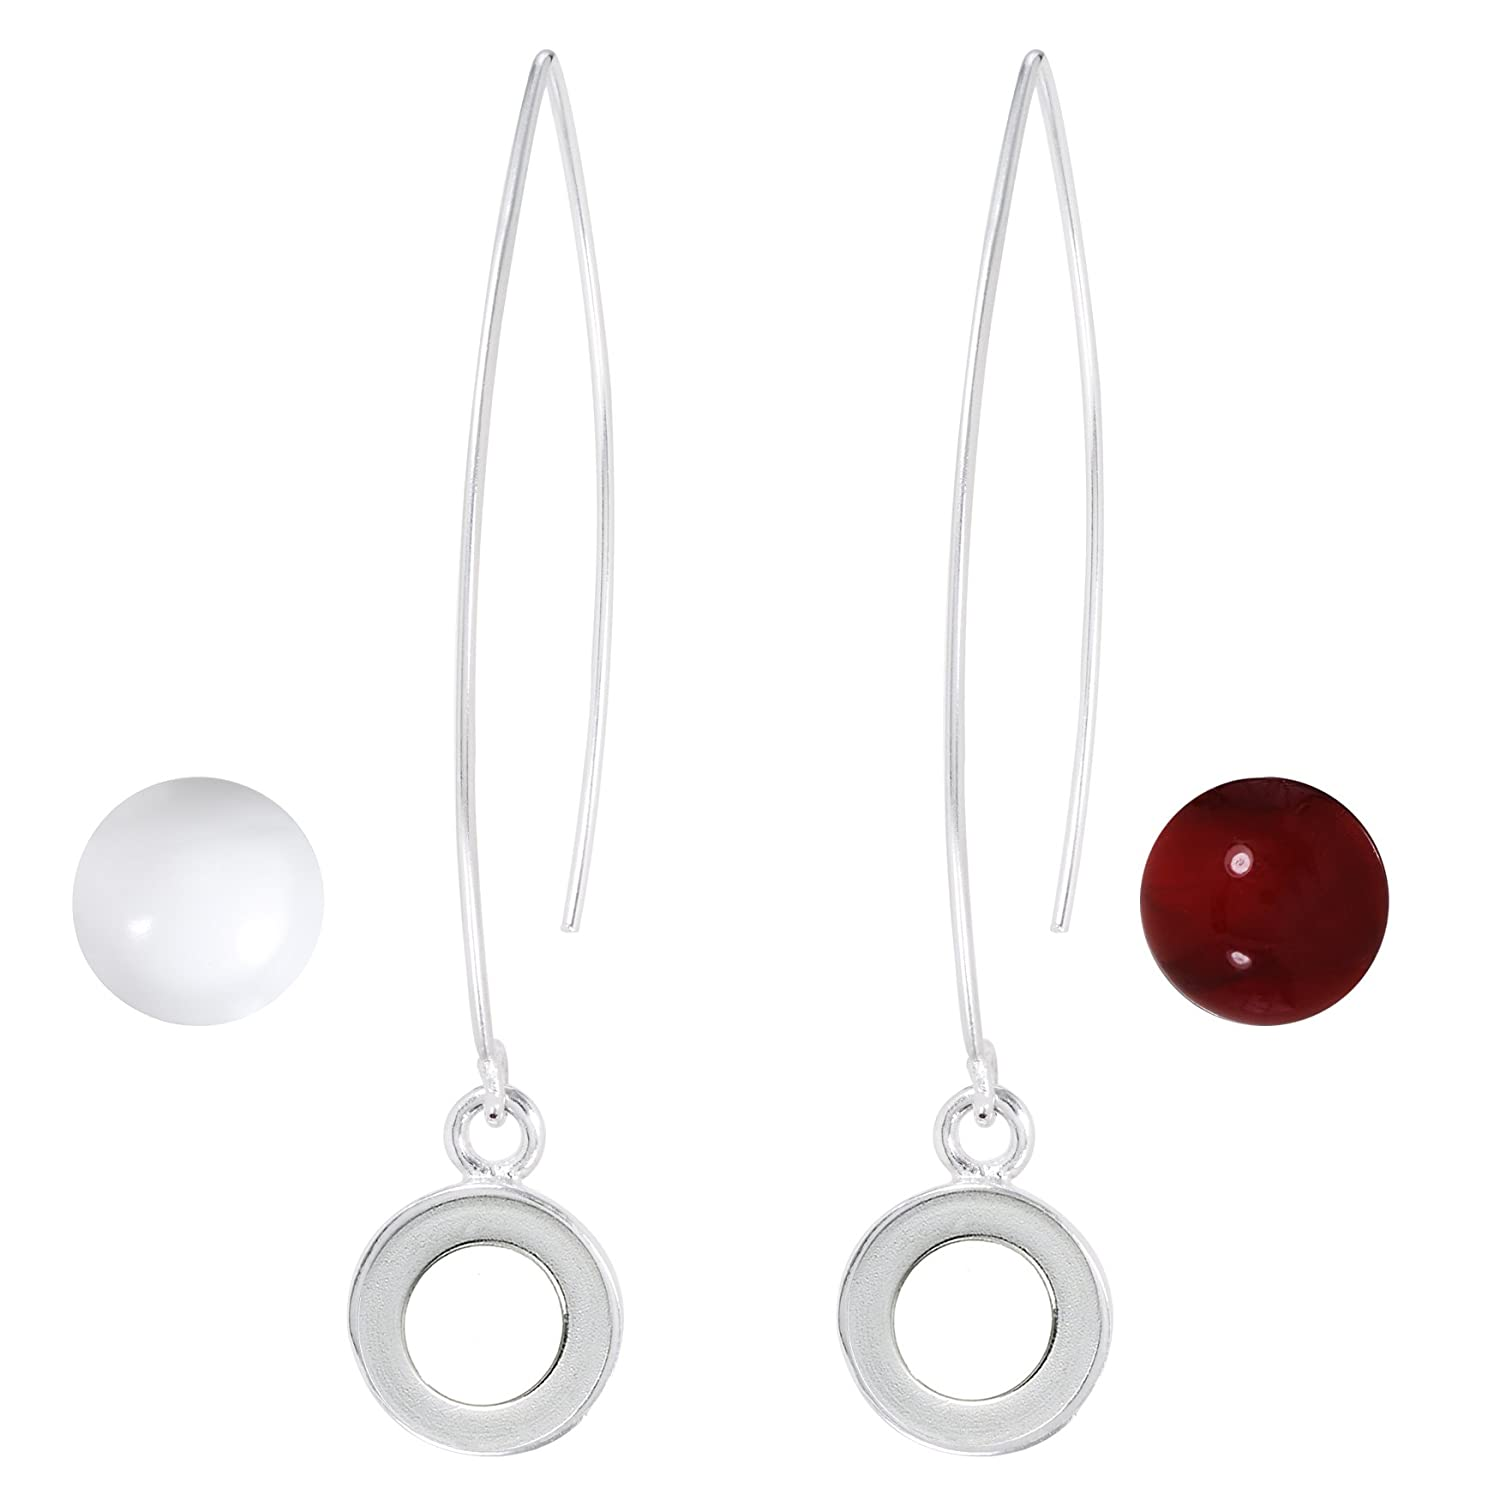 Kameleon Mod Traditions Earrings Set JewelPop Inc. KE047